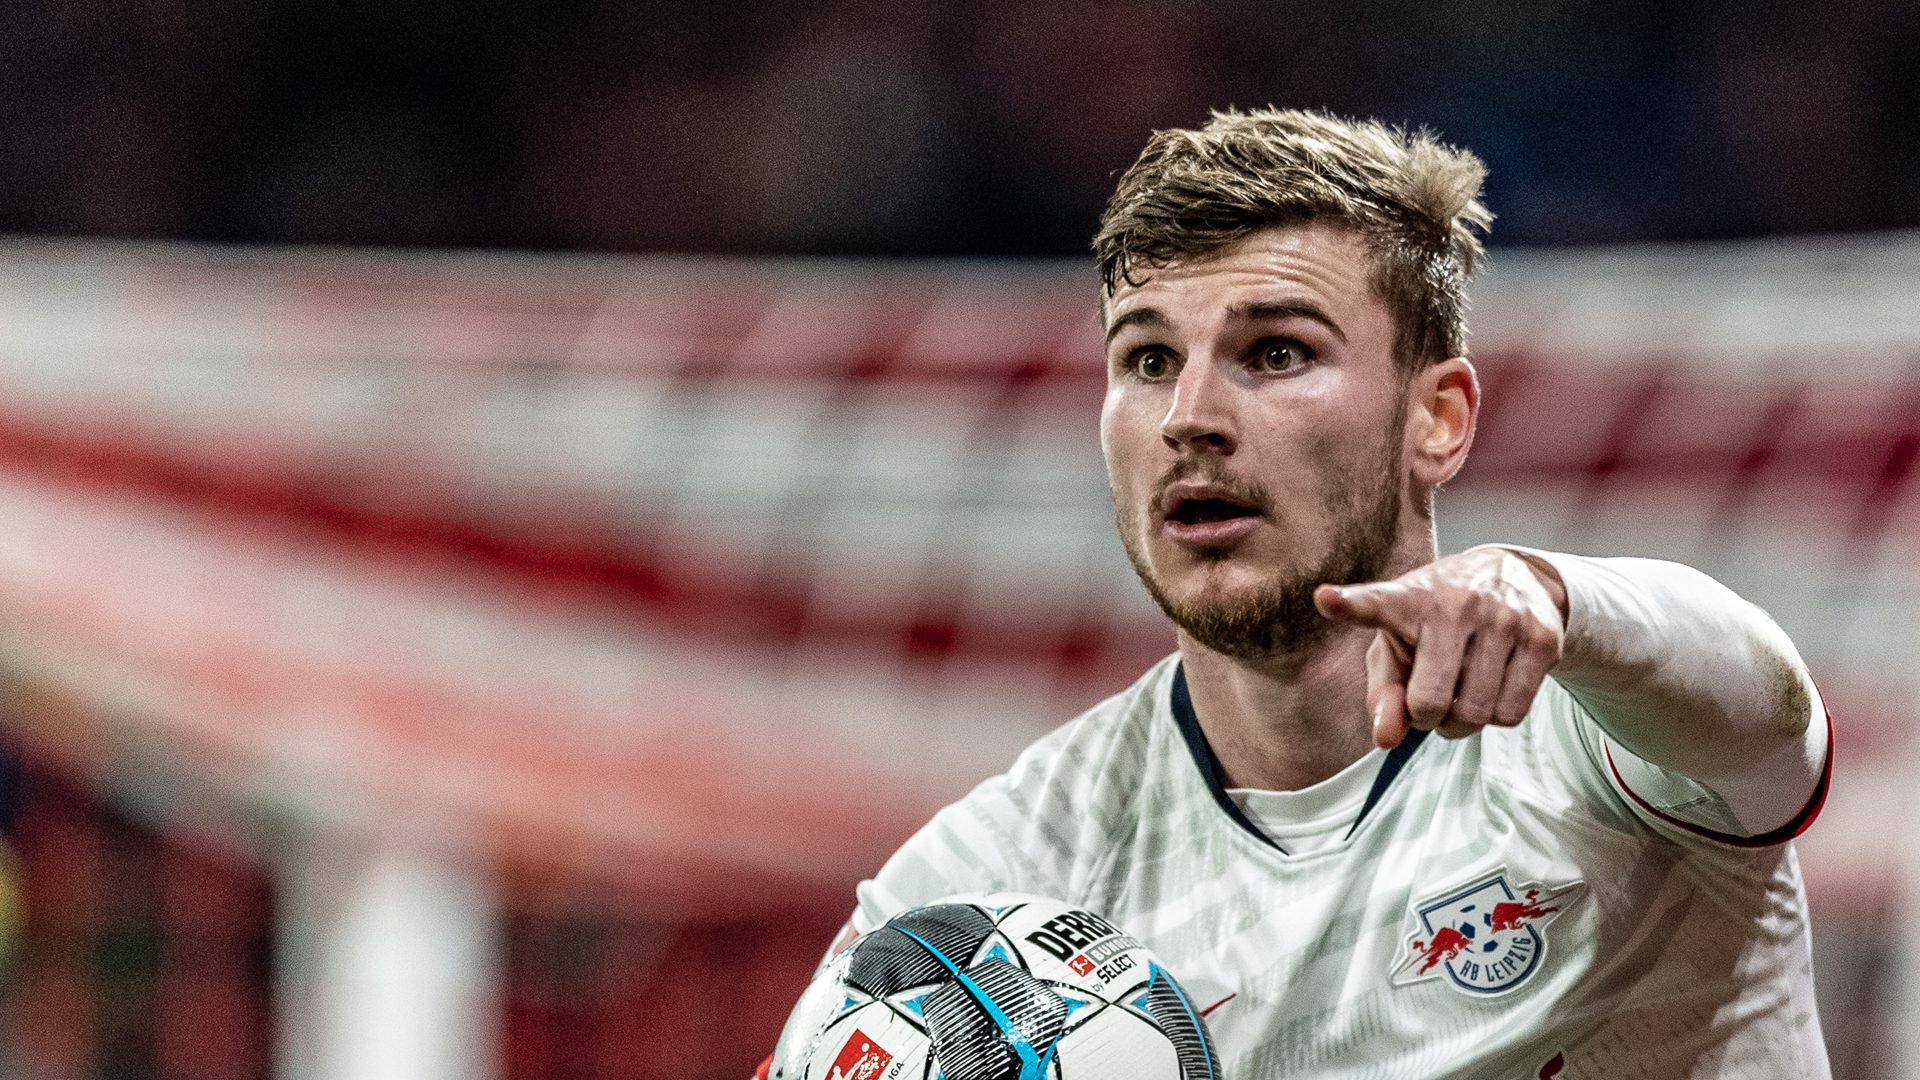 timo werner chelsea-timo werner in white jersey holding the ball